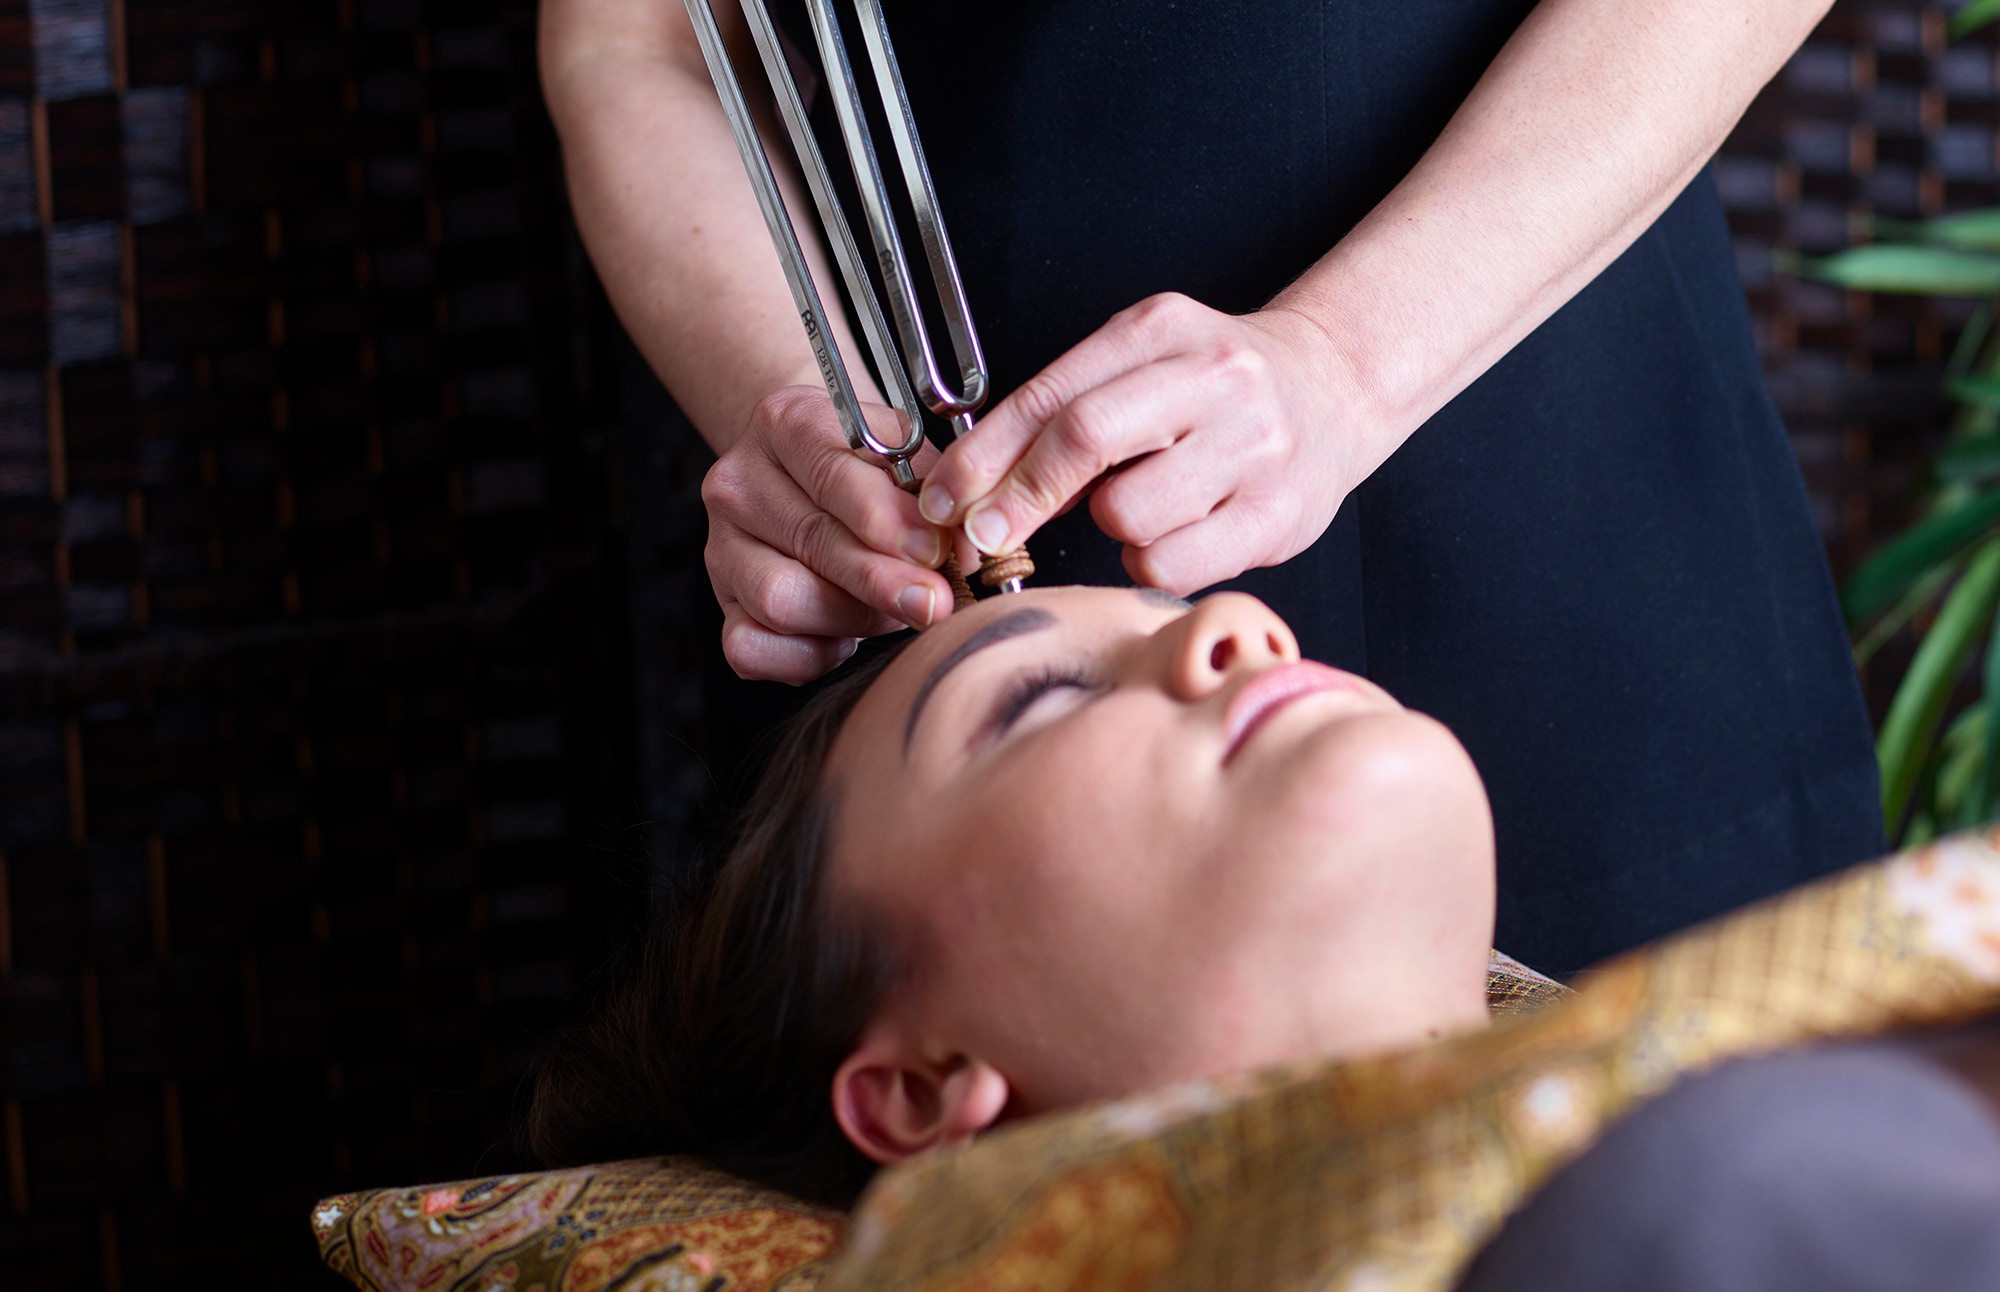 Therapist holding tuning forks to a woman's head as part of the SKN-RG wave facial